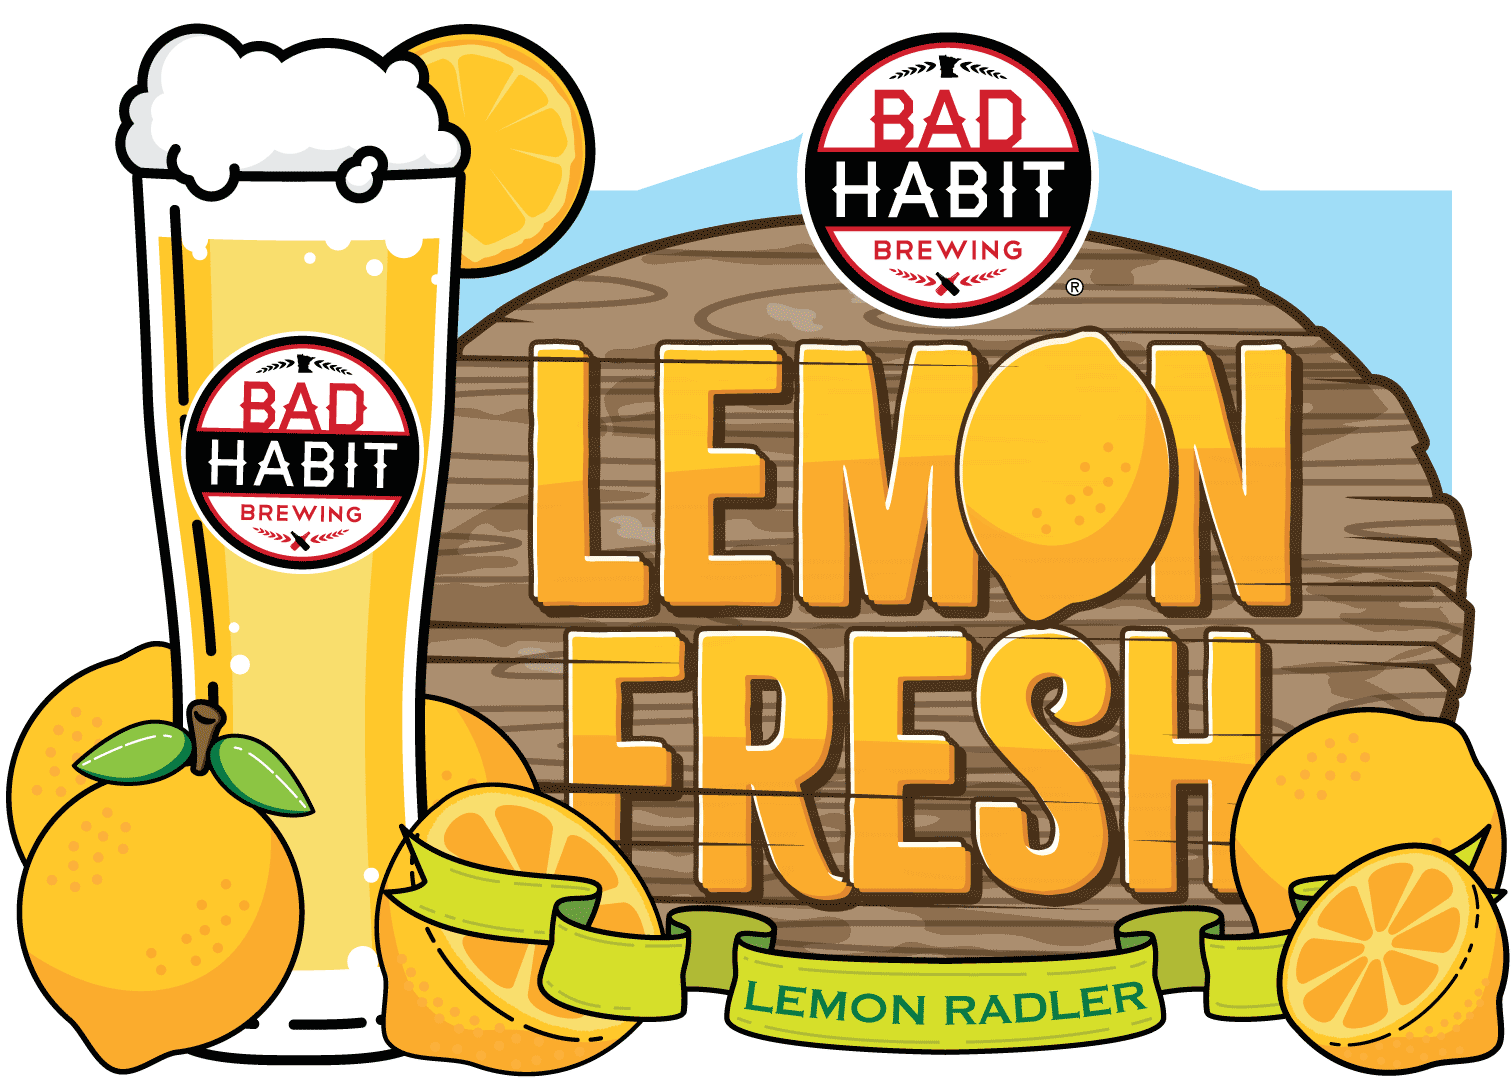 LEMONFRESH - Lemon Radler | 4.8% ABVWhat is better than sitting on the patio with a lemonade? How about sitting on the patio with our Lemon Fresh lemon radler. 50% lemonade, 50% ale, and 100% delicious!